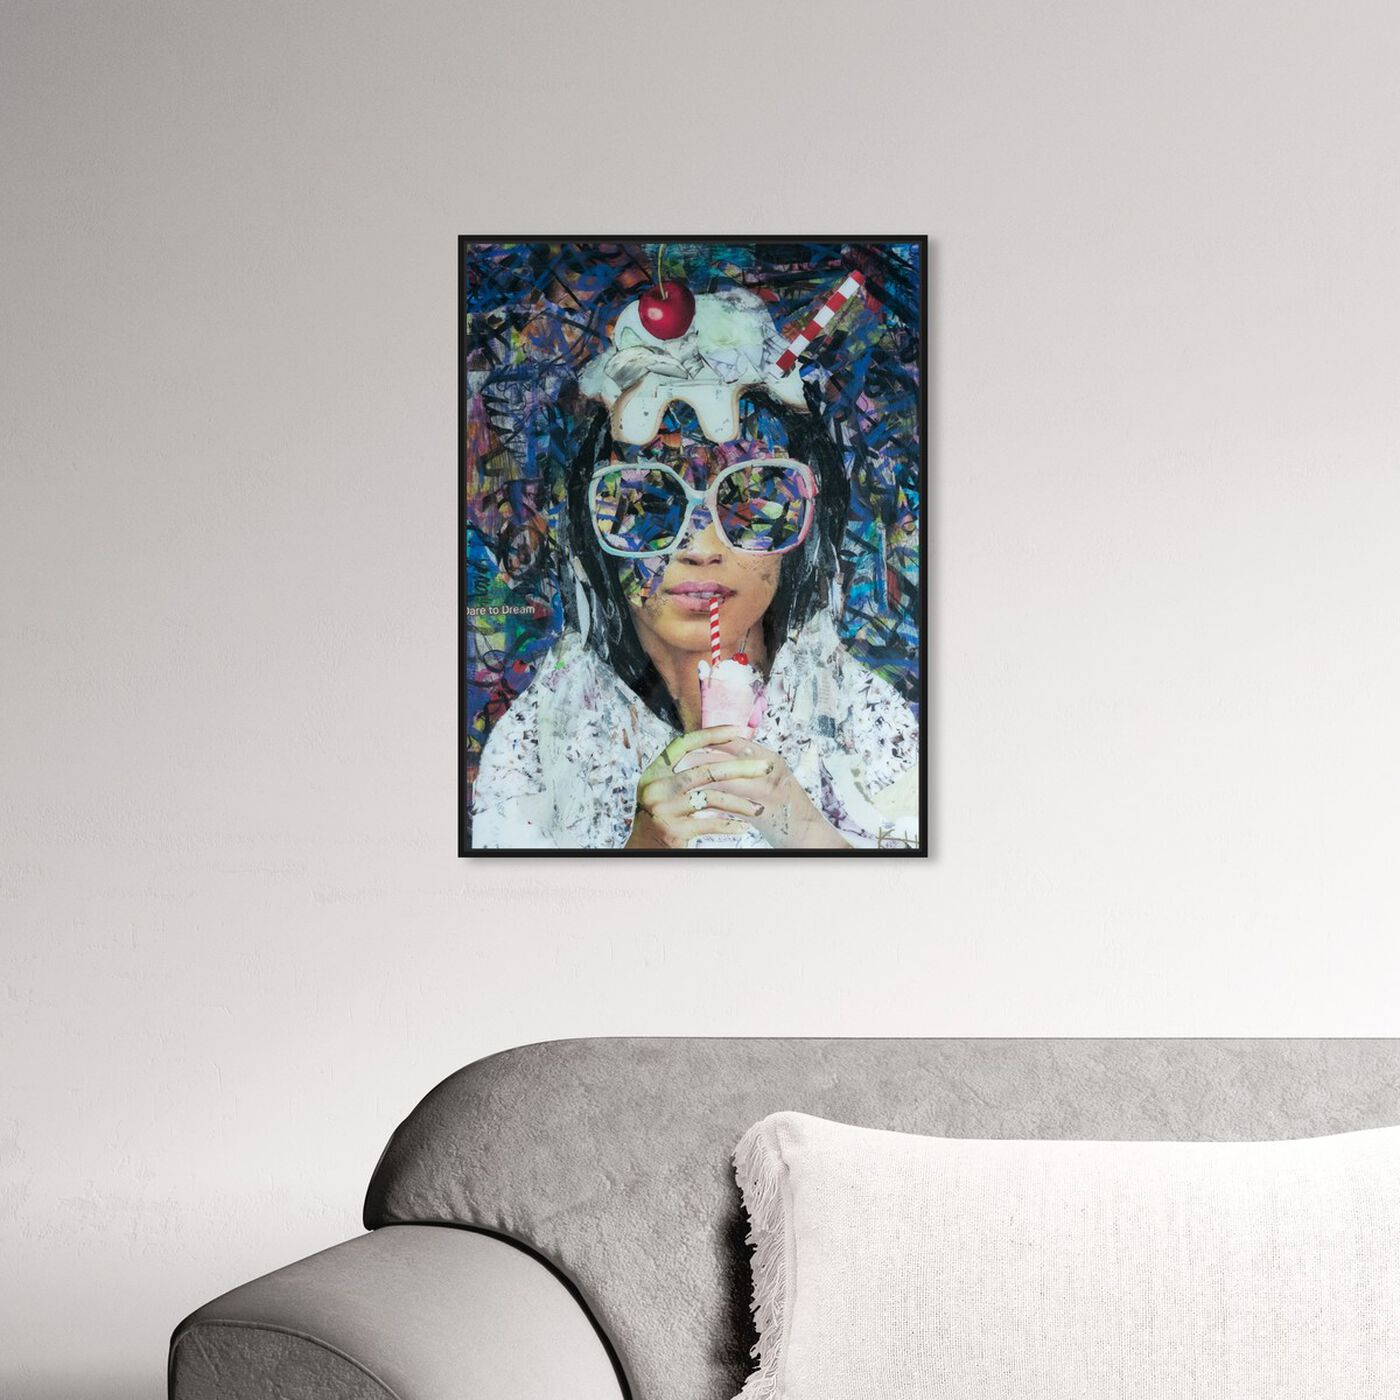 Hanging view of Milkshake Collage by Katy Hirschfeld featuring fashion and glam and portraits art.